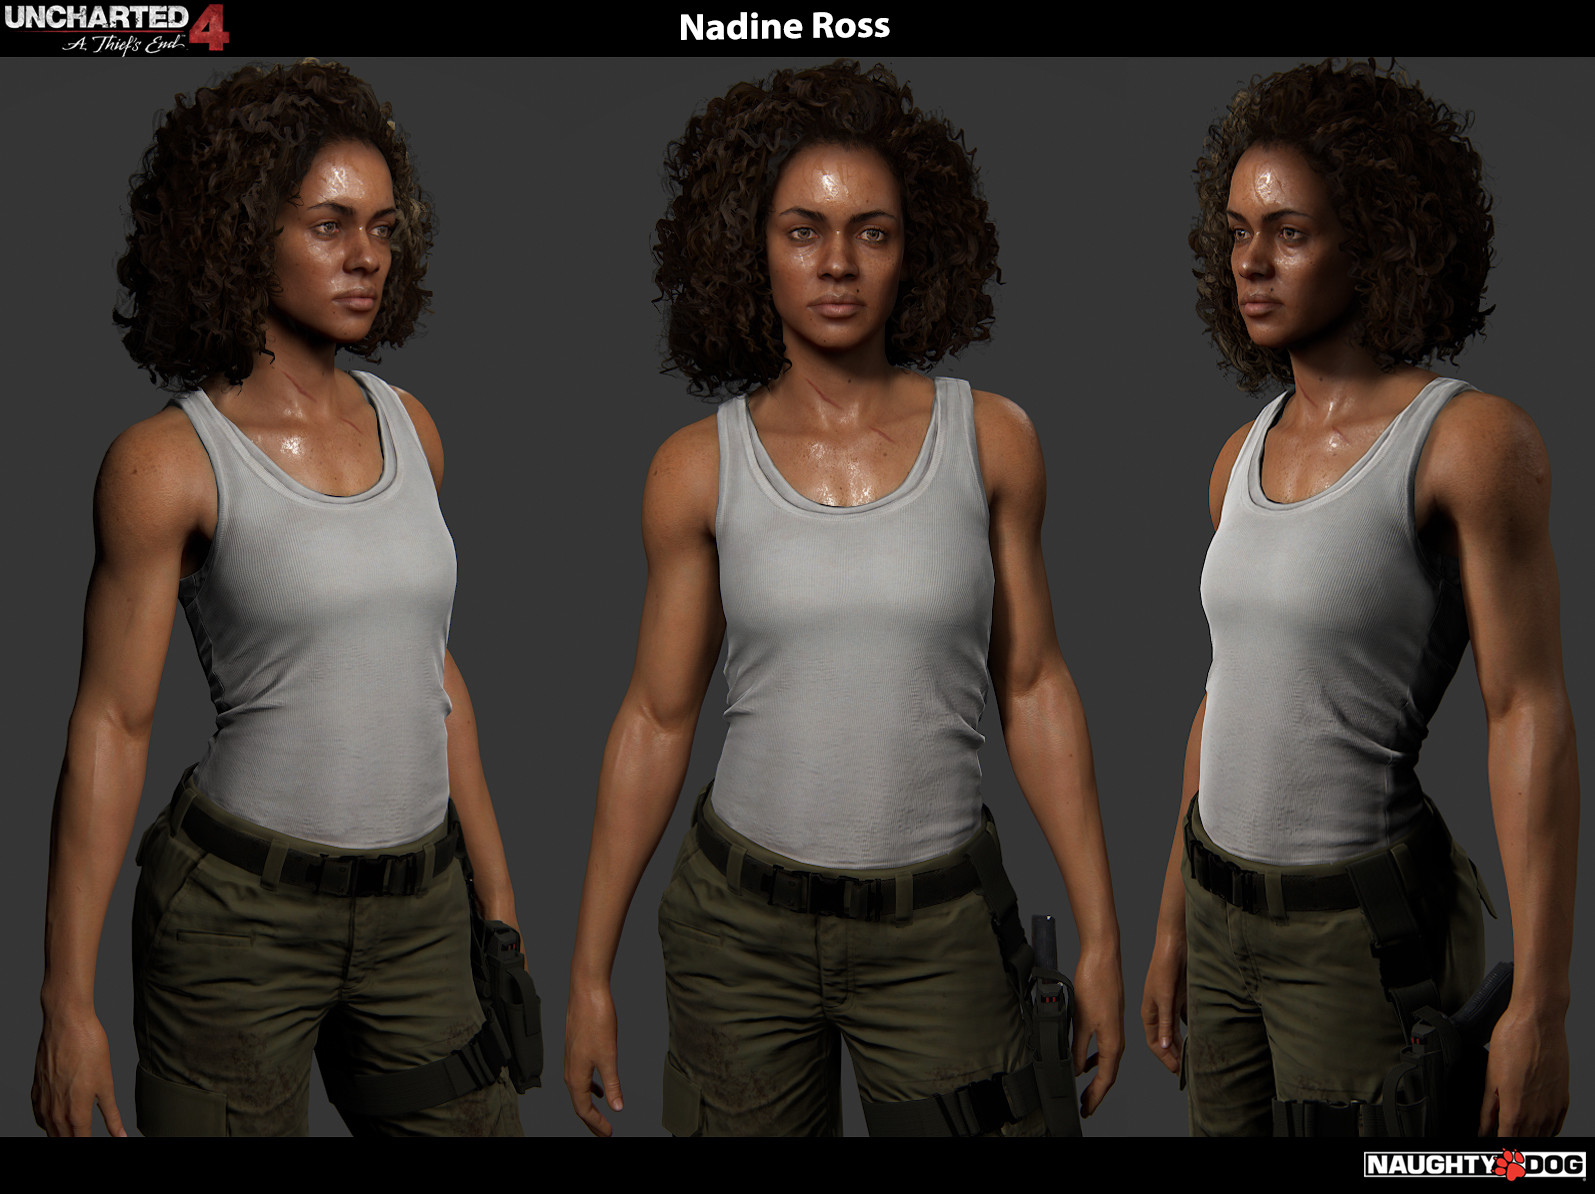 Uncharted nadine uncharted nadine ross porn uncharted nadine ross porn uncharted nadine ross